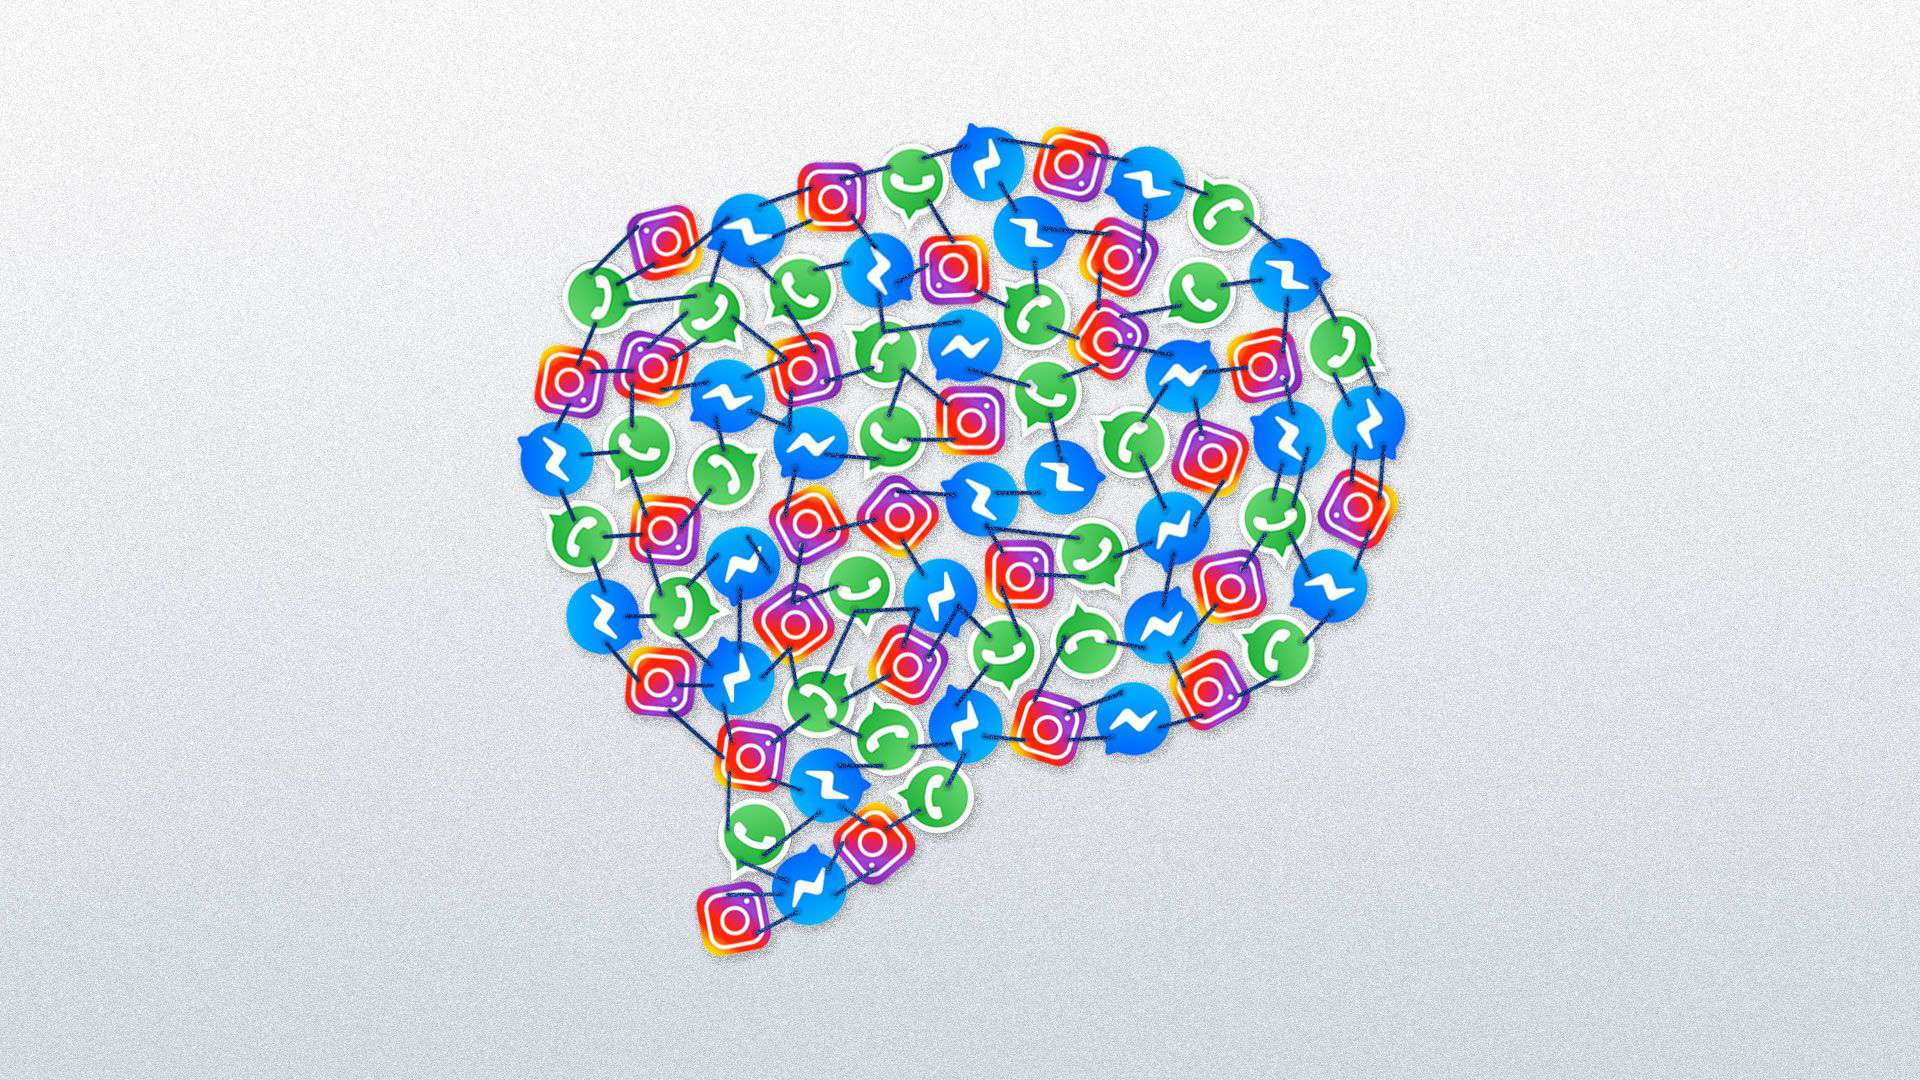 What are the benefits of connecting WhatsApp to Instagram?